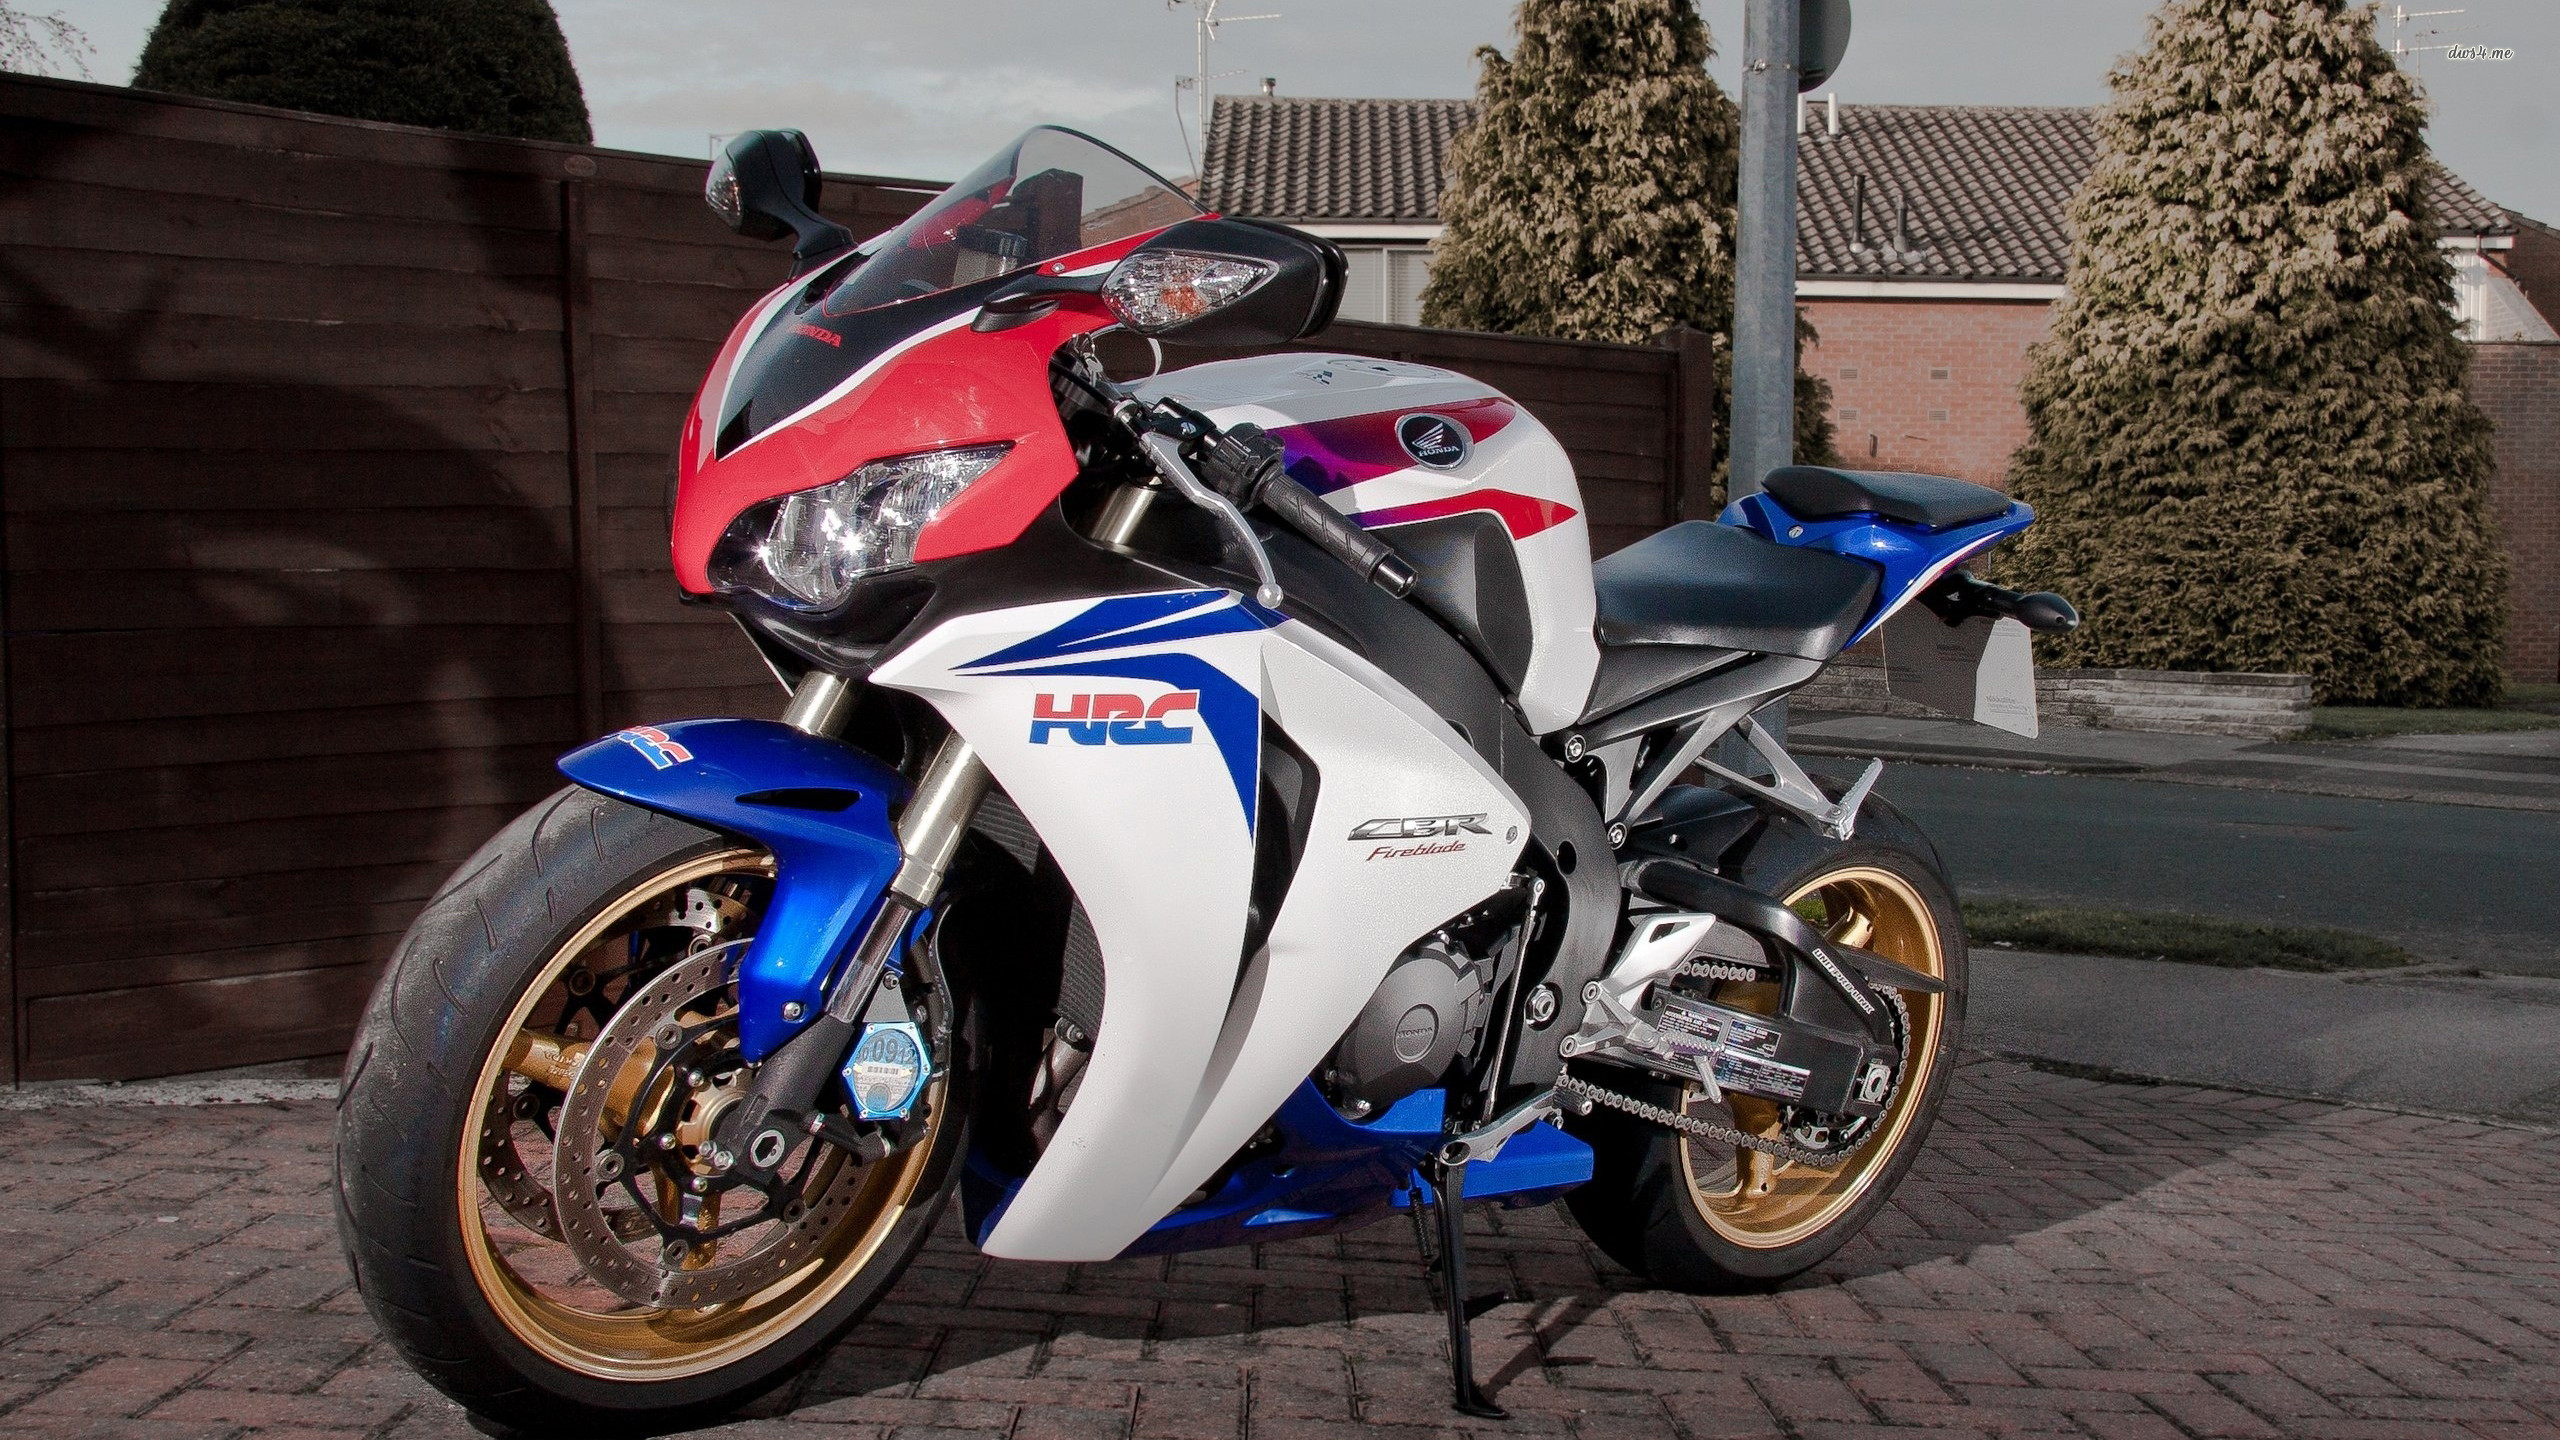 74 Cbr1000Rr Wallpapers on WallpaperPlay 2560x1440